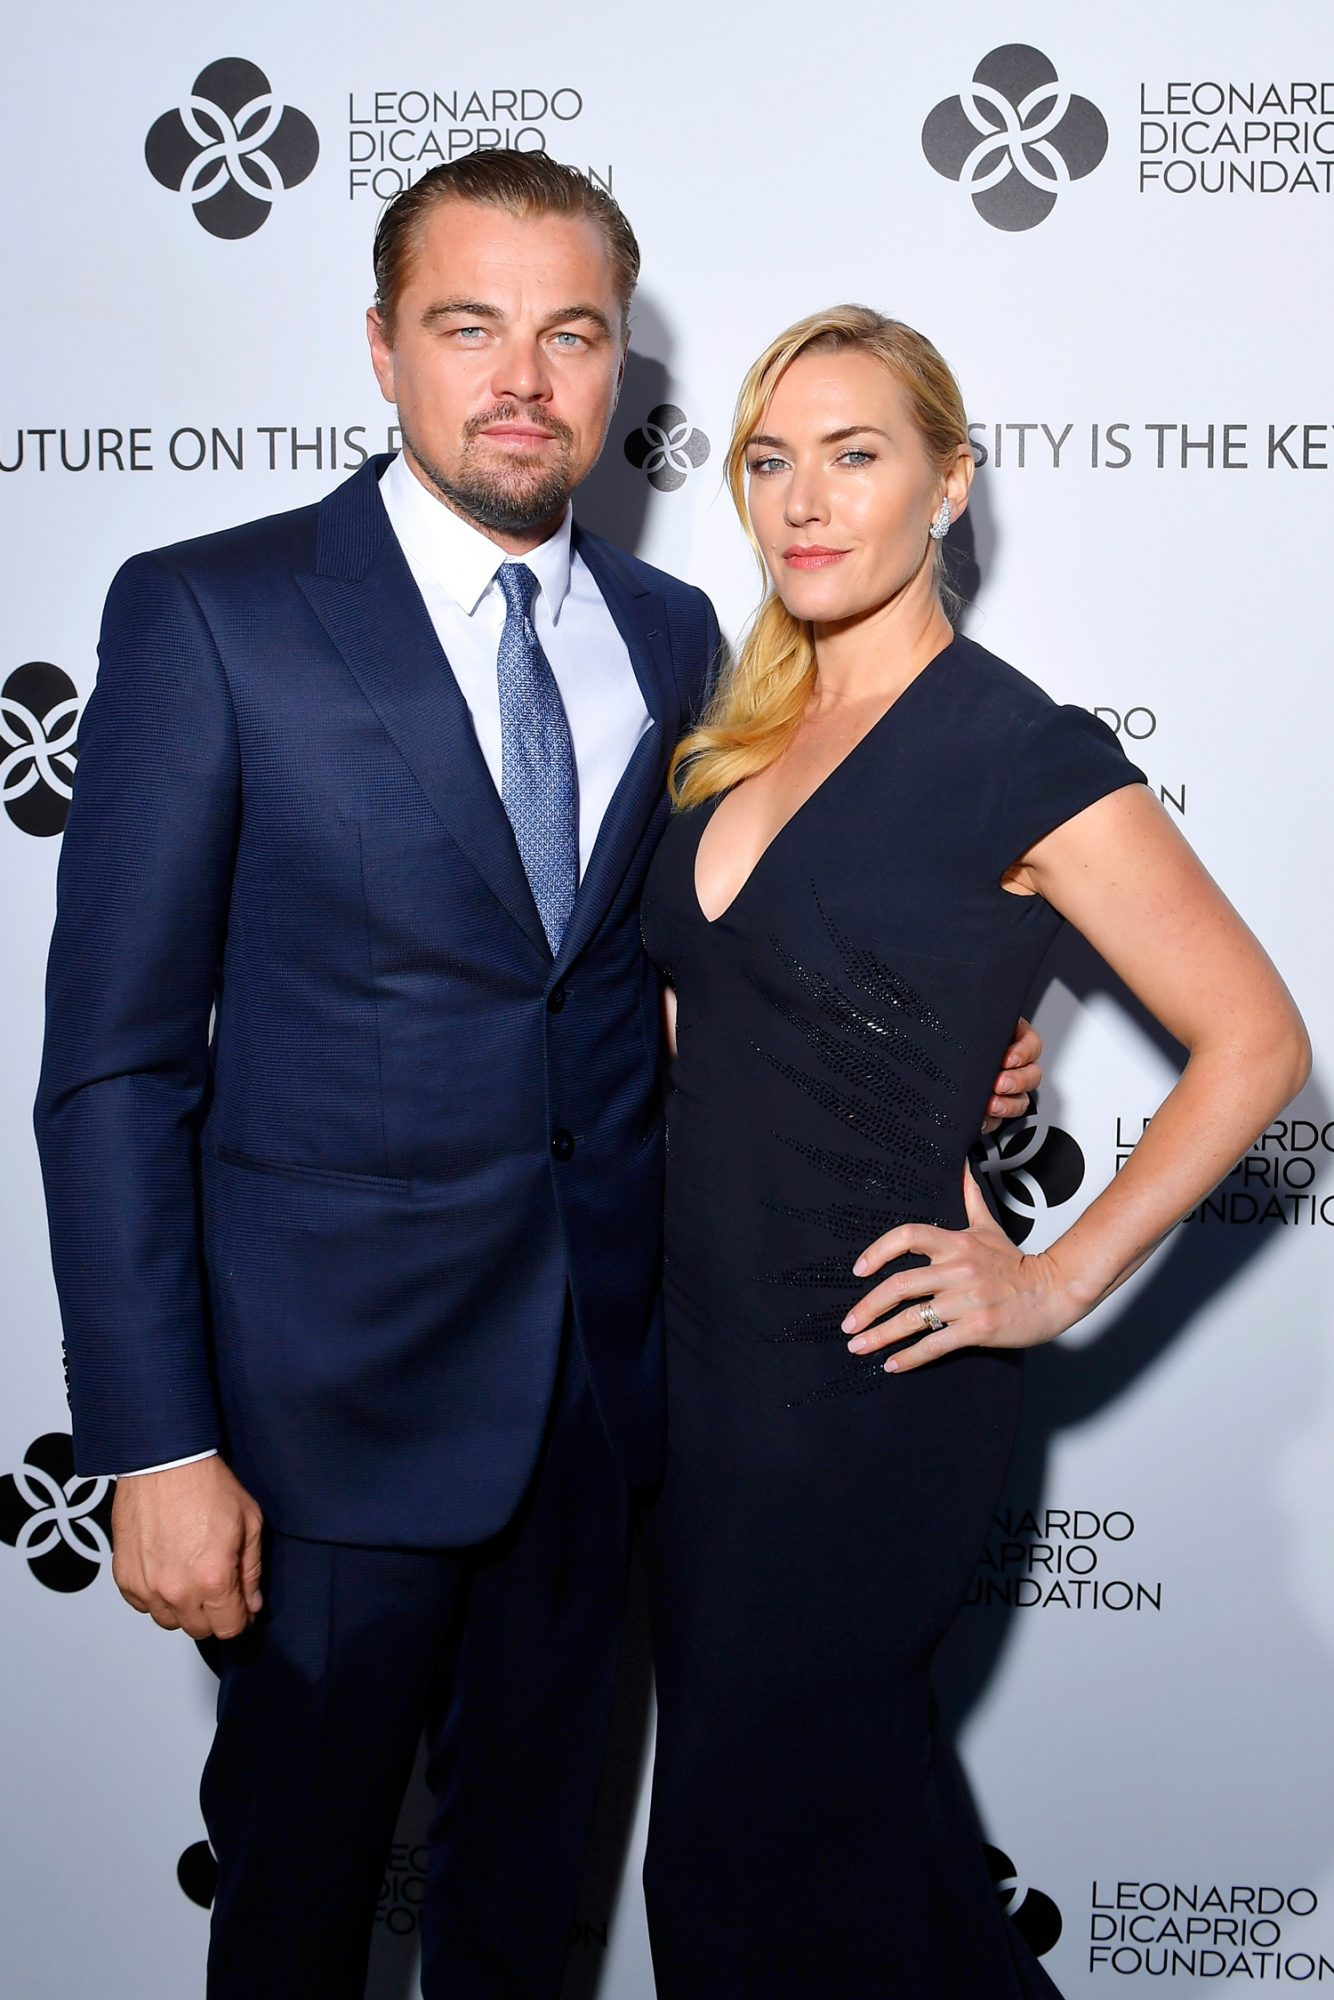 Still Got It: Leonardo DiCaprio and Kate Winslet